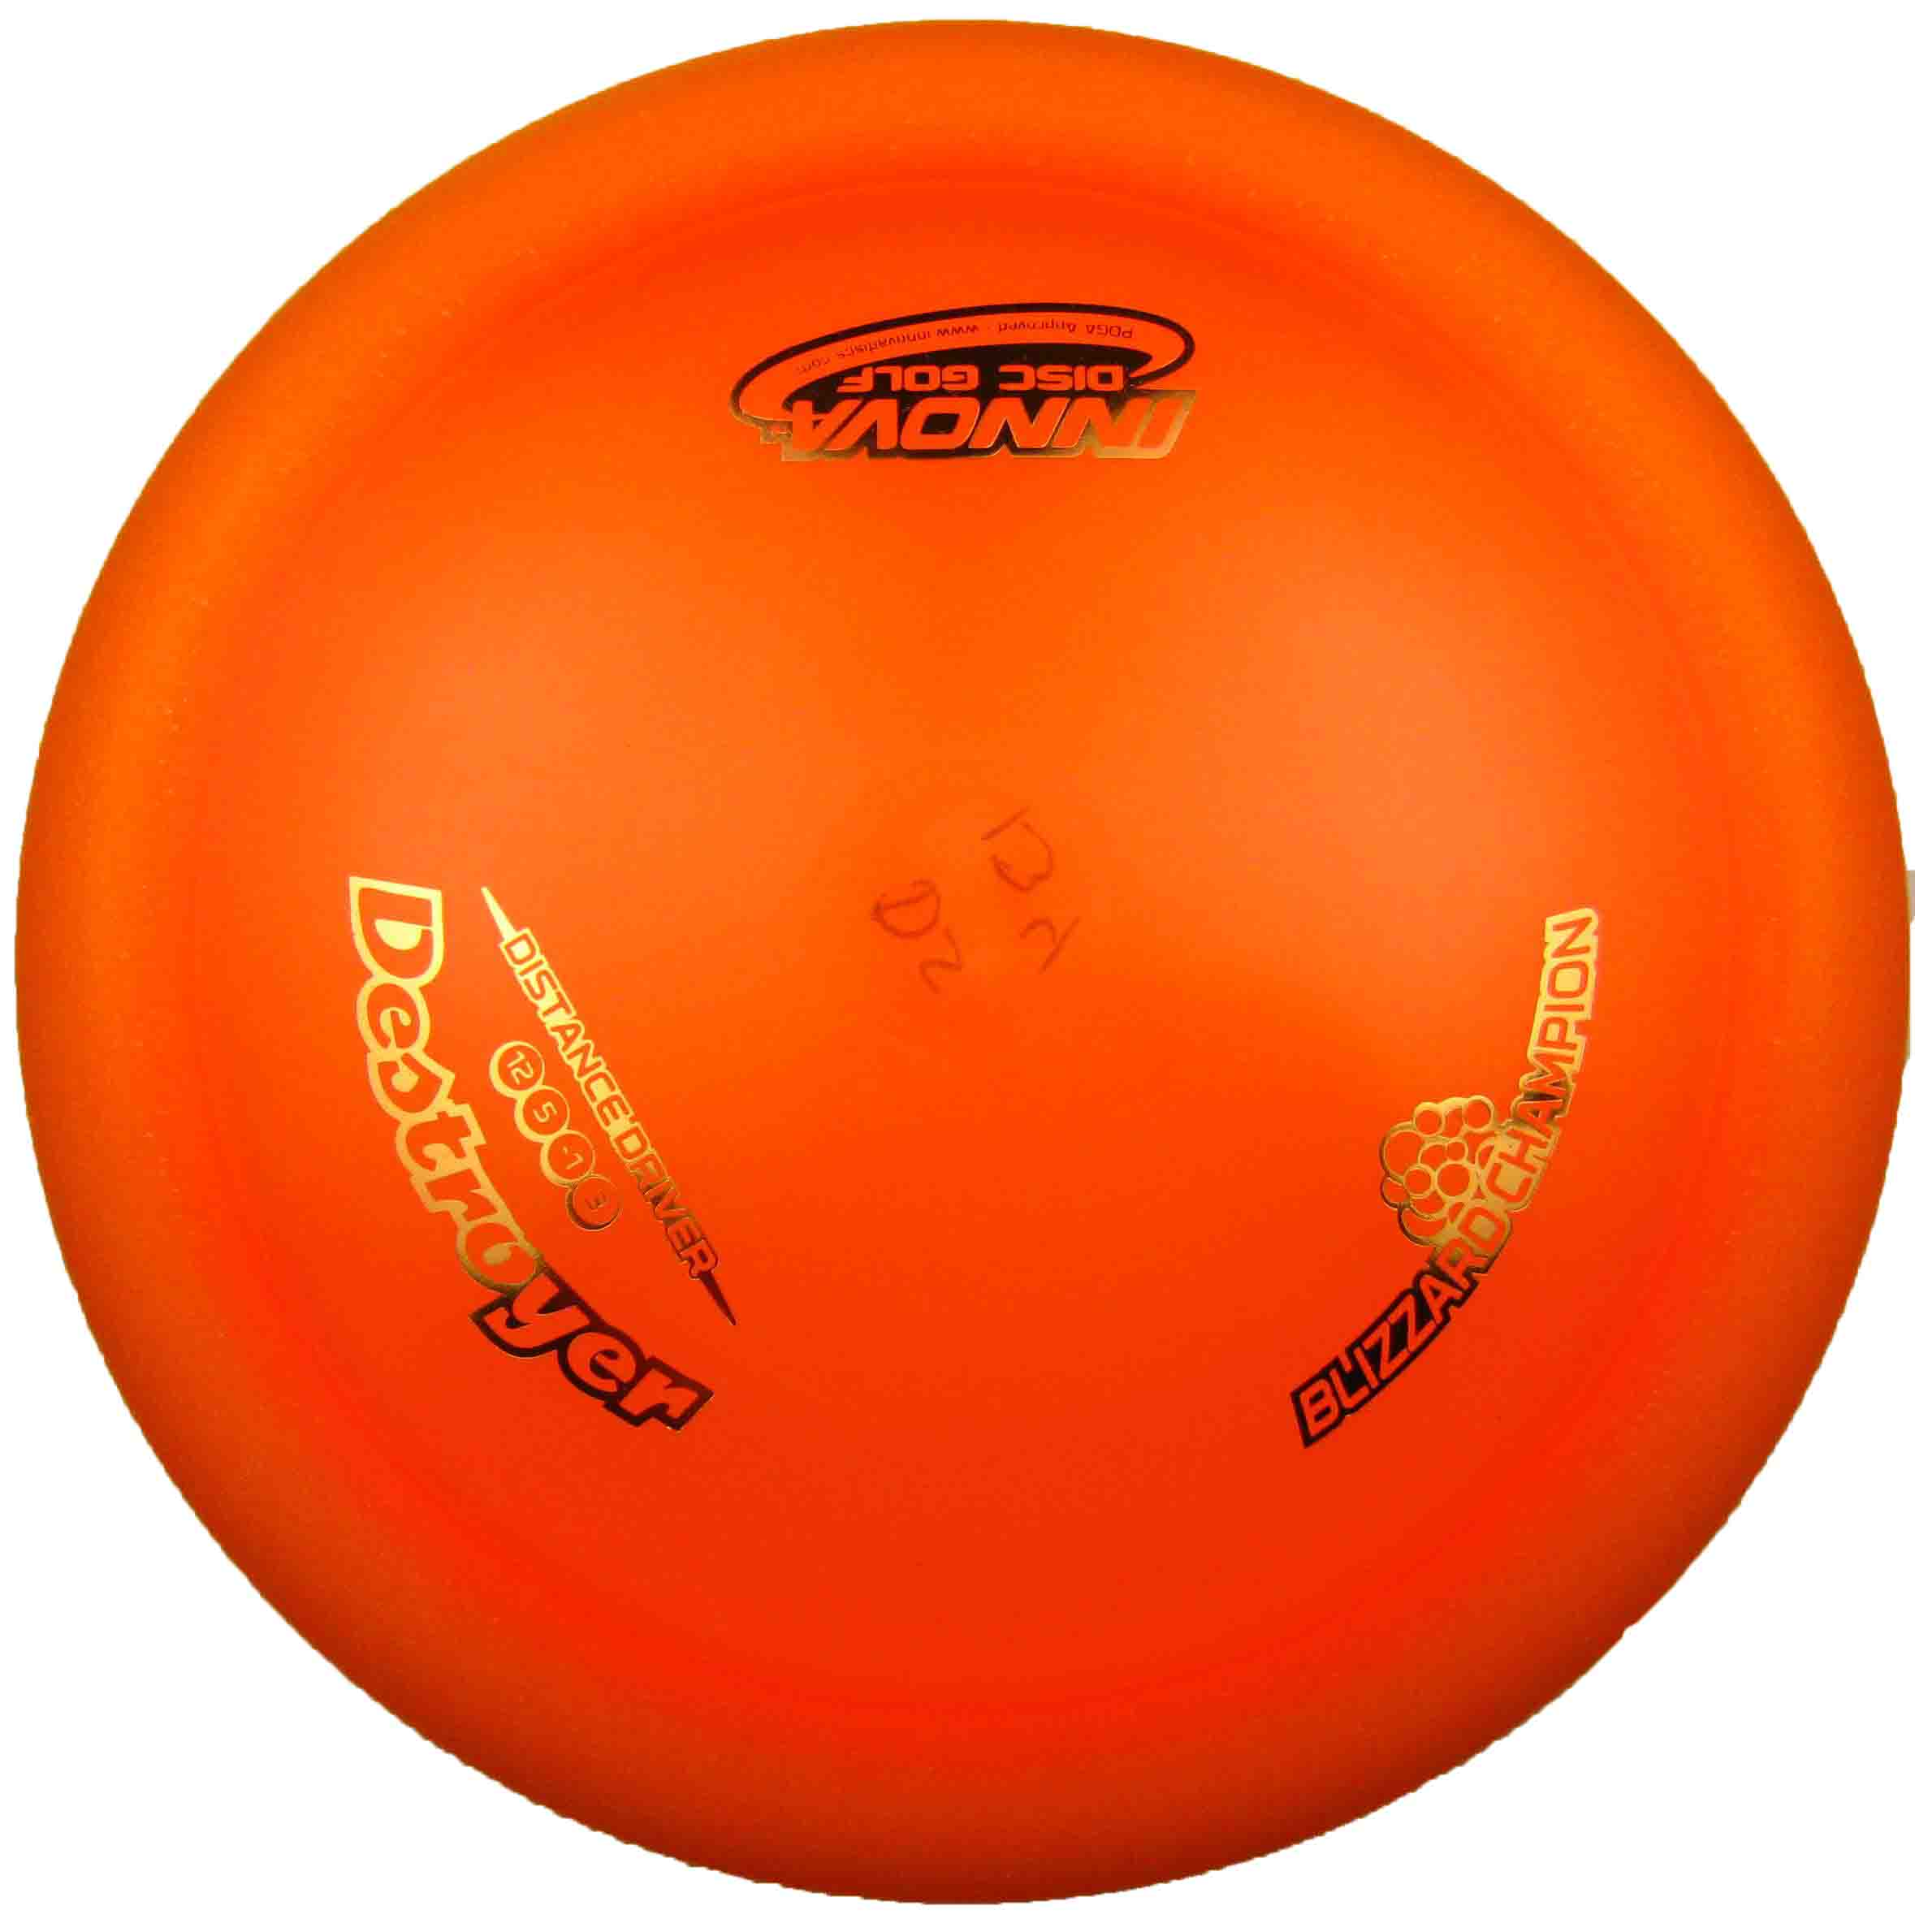 Destroyer Champion Blizzard Orange